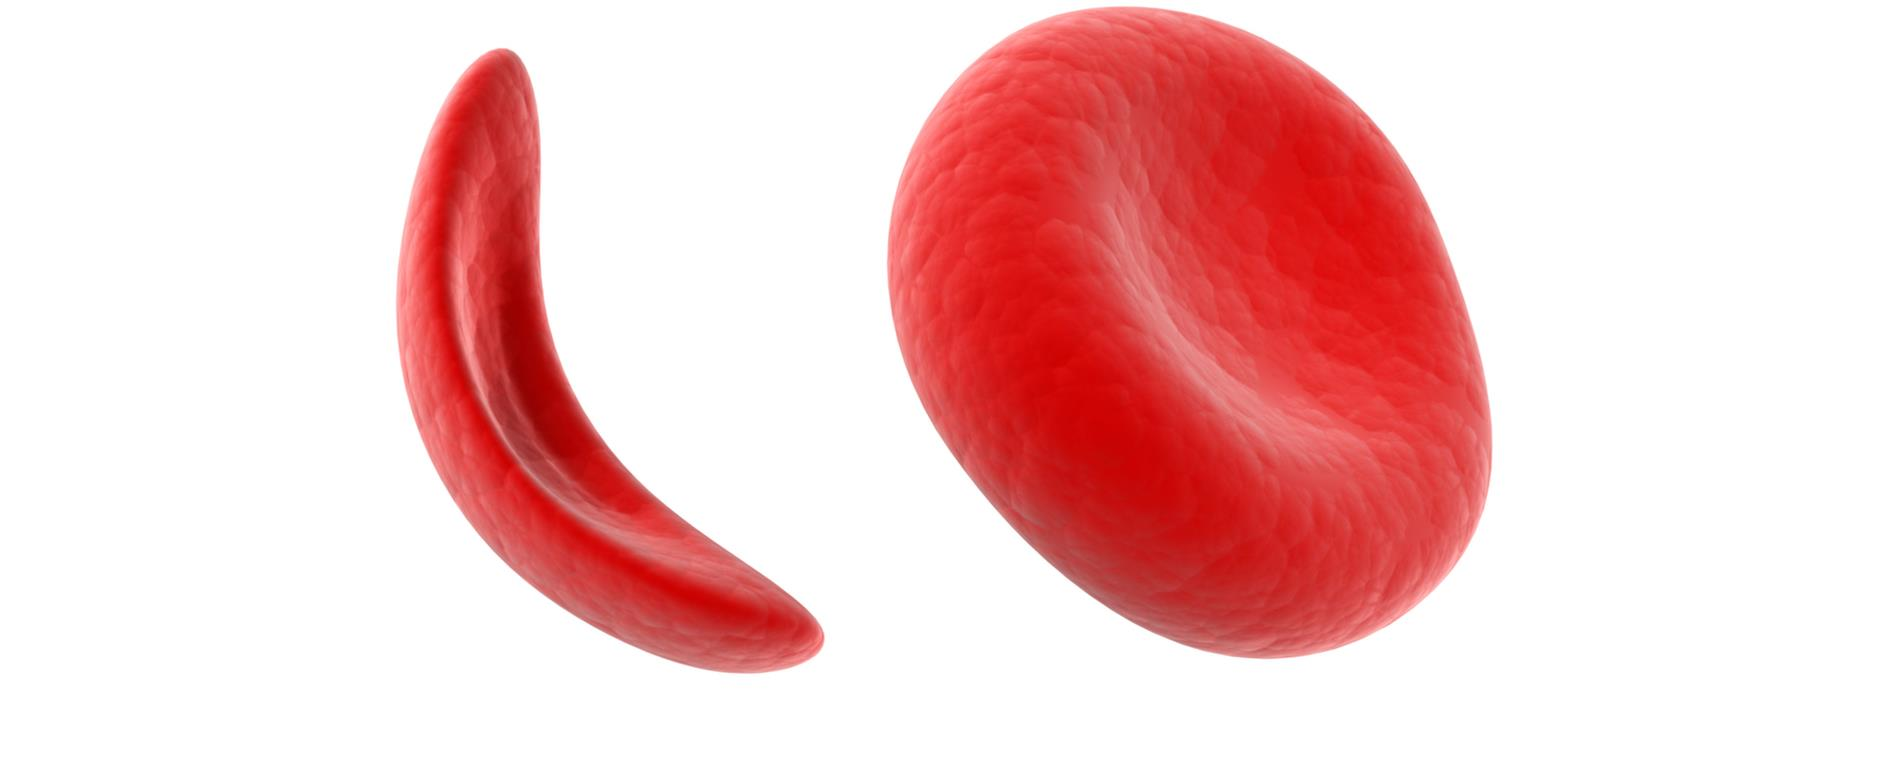 400,000 Cameroonians living with the sickle cell disease